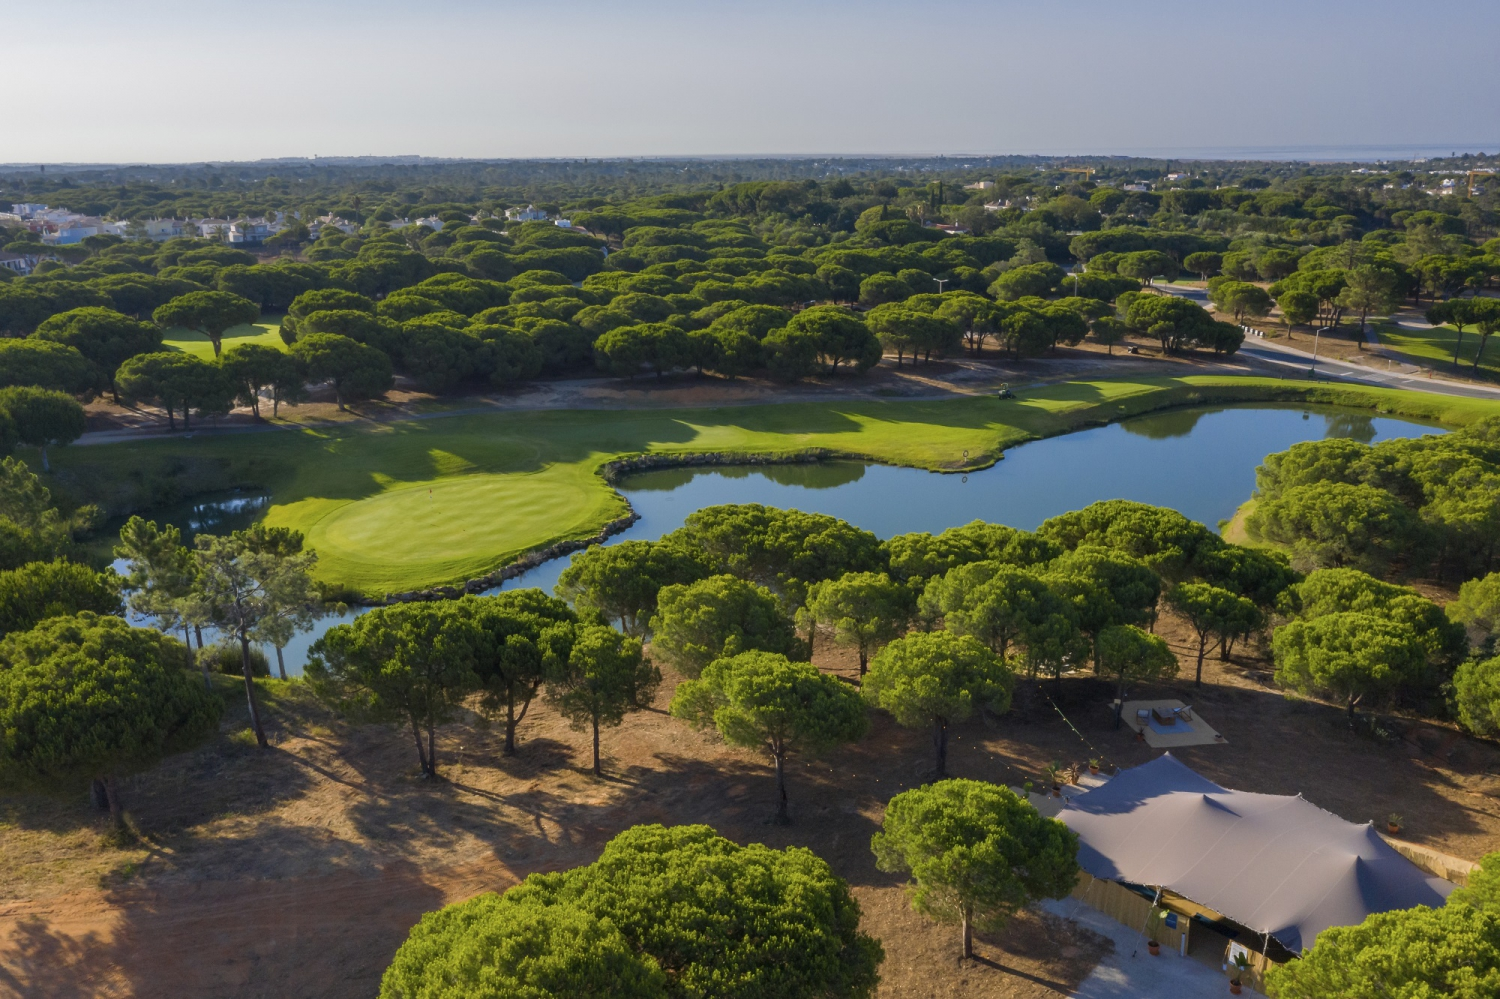 Vale Real - new venue for Vale do Lobo experiences